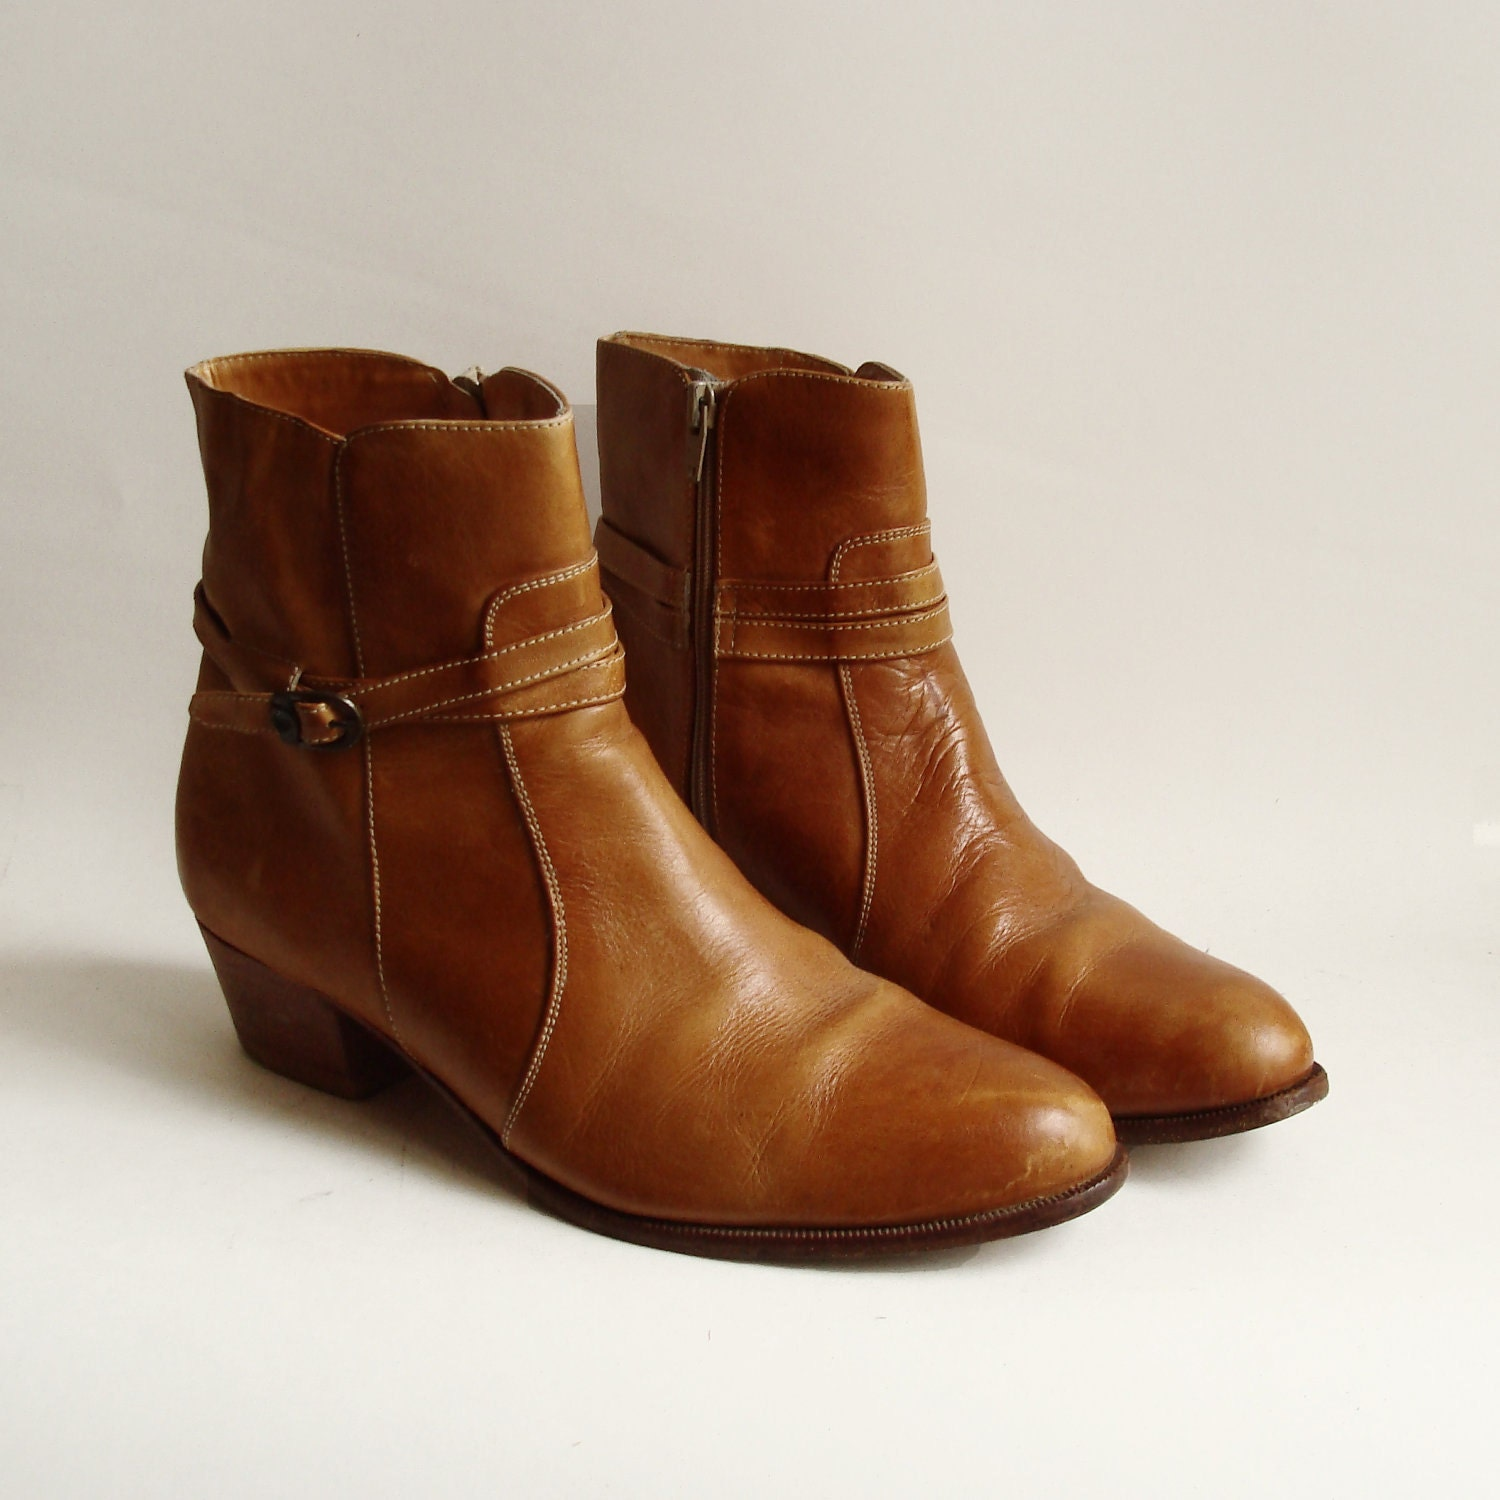 Free shipping and returns on Women's Brown Ankle Boots at trueufilv3f.ga